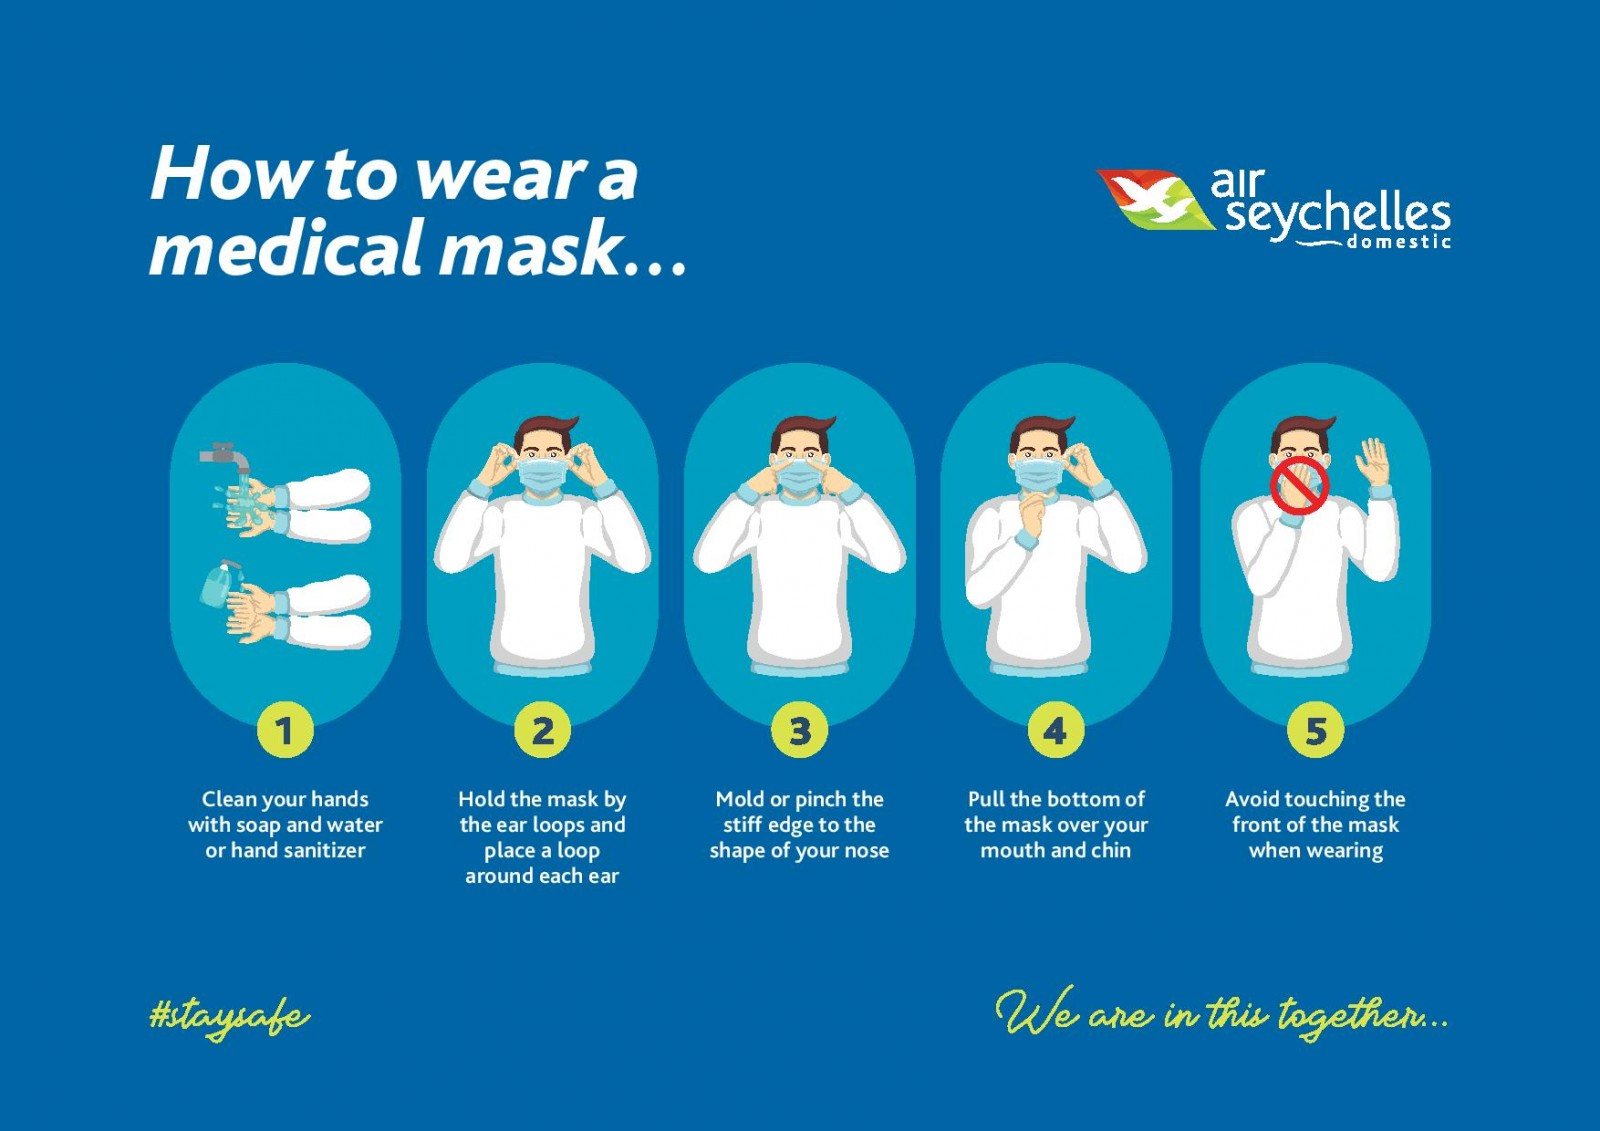 Air Seychelles - How to wear a Mask.jpg